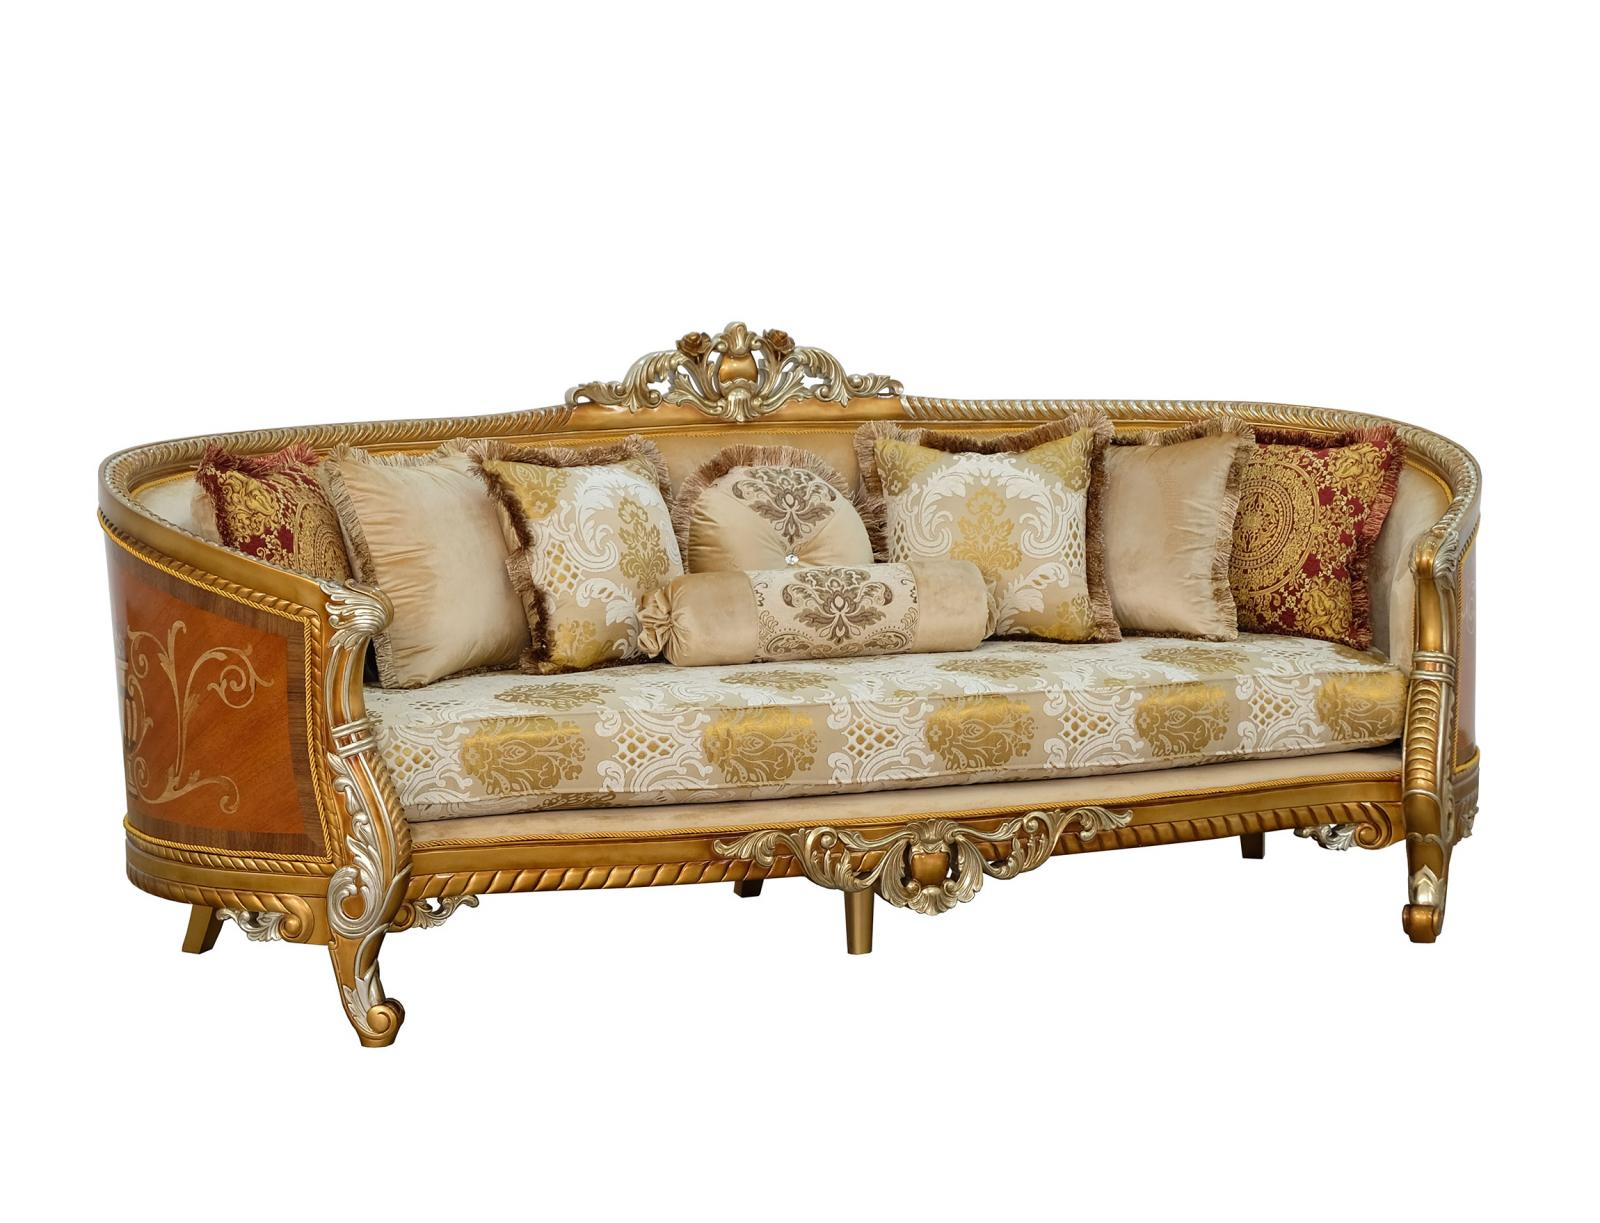 Classic  Traditional Brown  Gold  Antique Wood  Solid Hardwood and Fabric Sofa EUROPEAN FURNITURE 68587-S